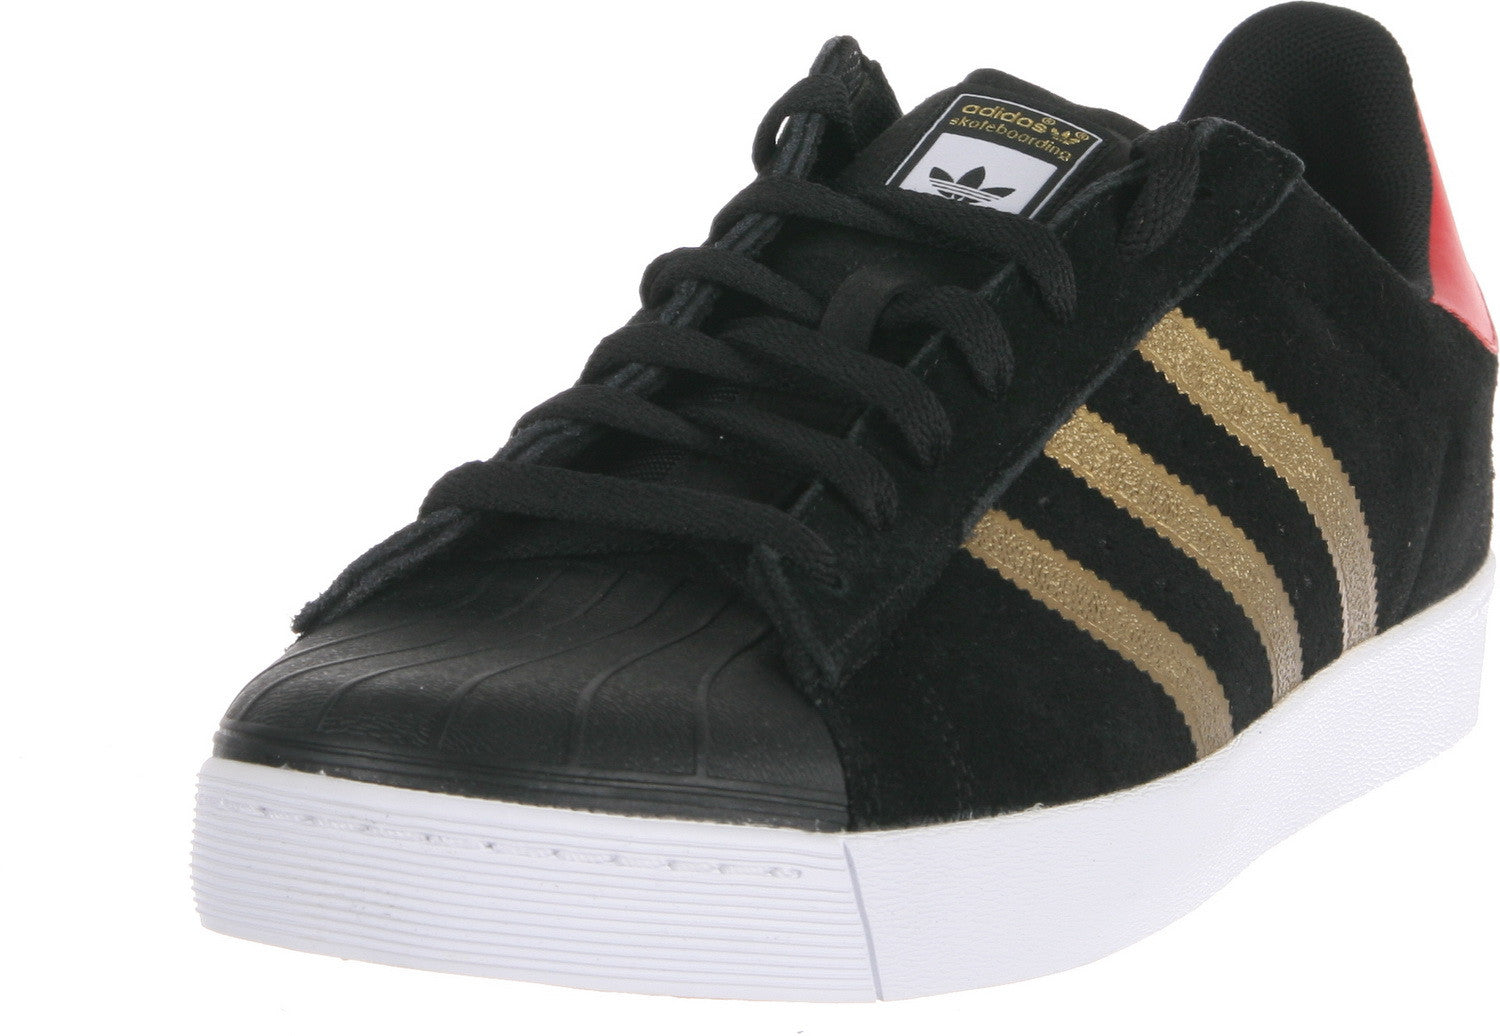 Cheap Adidas Originals Superstar 80s Page 2 of 13